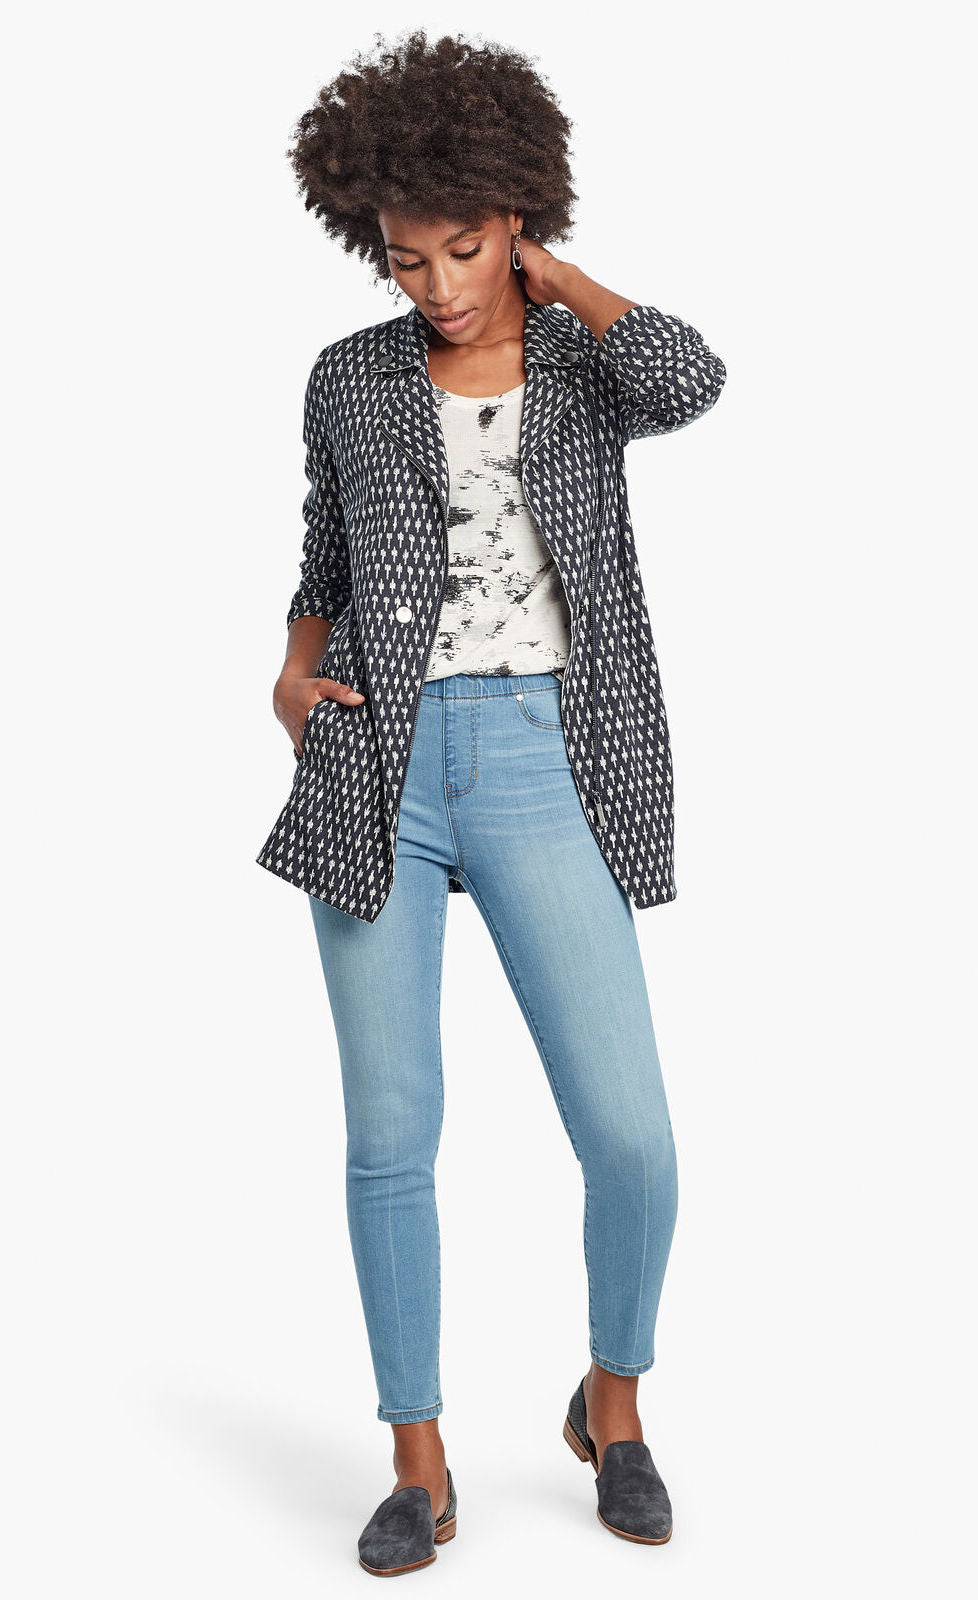 Front, full body view of a woman wearing the Nic + Zoe Ponte Ikat Jacket over a white printed top and with fitted jeans. The jacket is indigo with a white speck print all over it. It has a flat, notched lapel, and a front, off-center zipper.